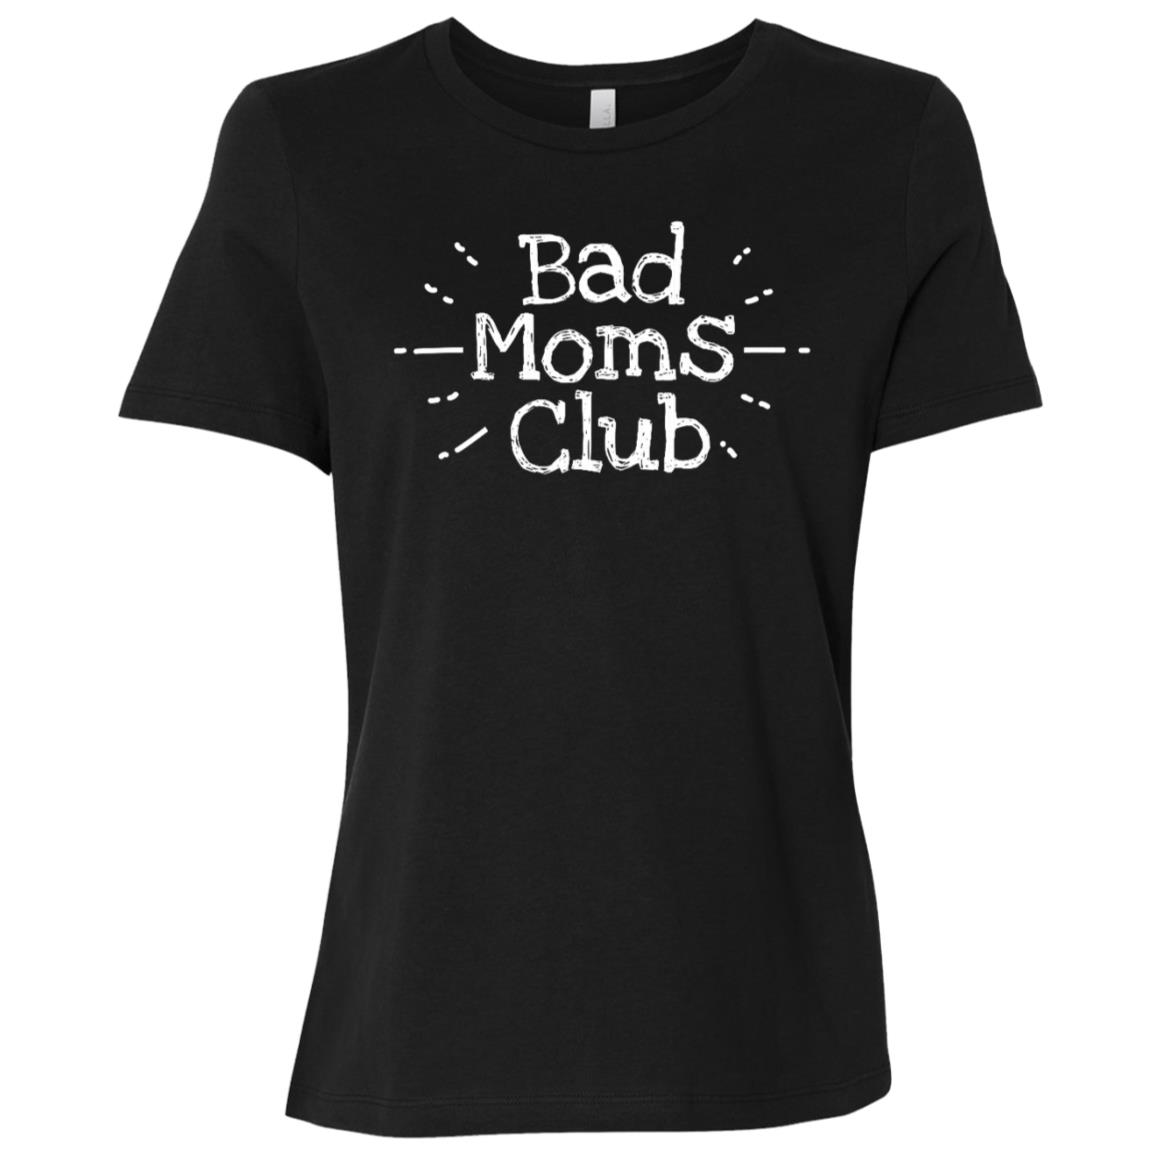 Bad Moms Club Funny Mothers Gift Women Short Sleeve T-Shirt